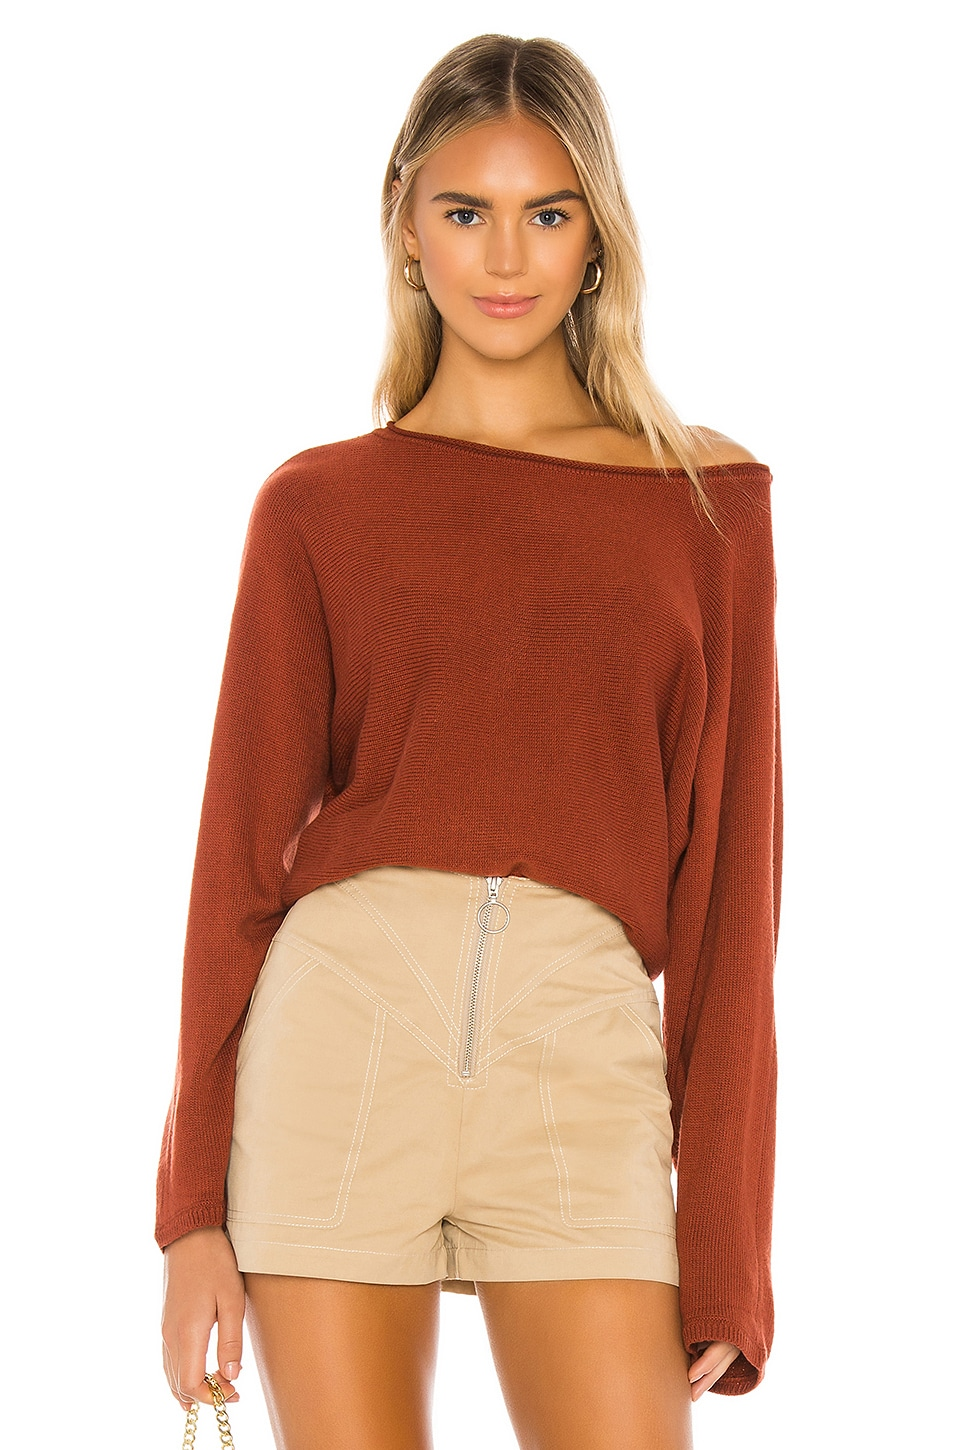 Tularosa Perch Sweater in Brick